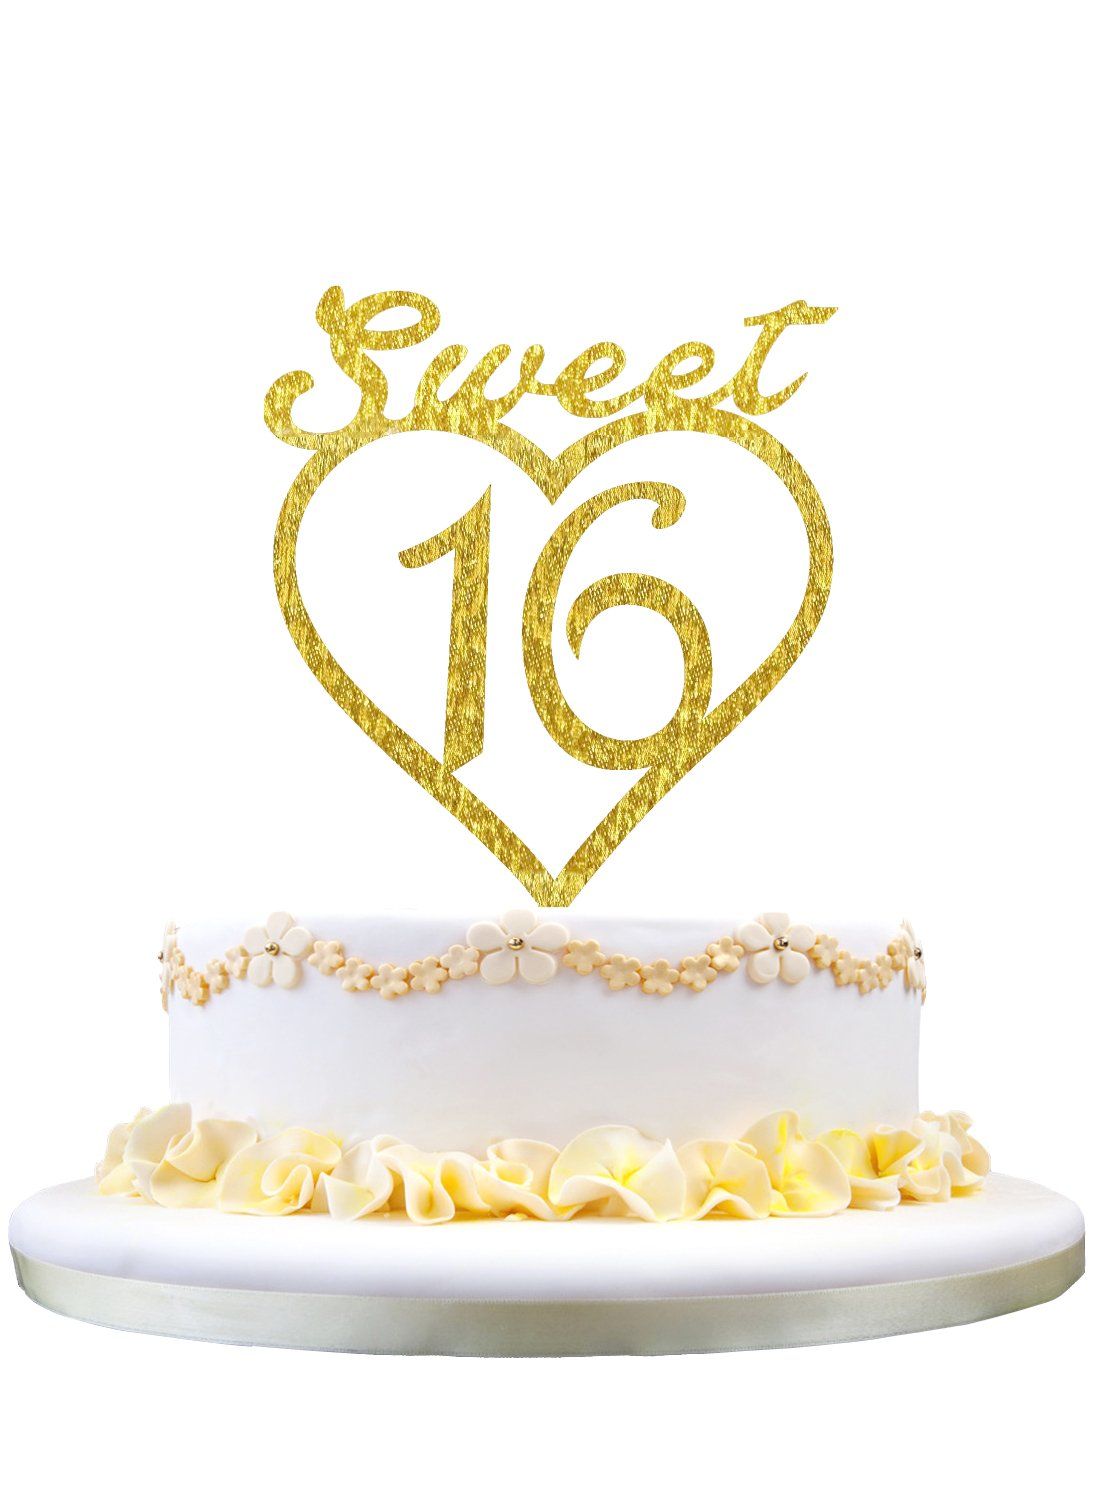 Tremendous Monogram Cake Topper Sweet 16 Silhouette 16Th Birthday Cake Funny Birthday Cards Online Alyptdamsfinfo